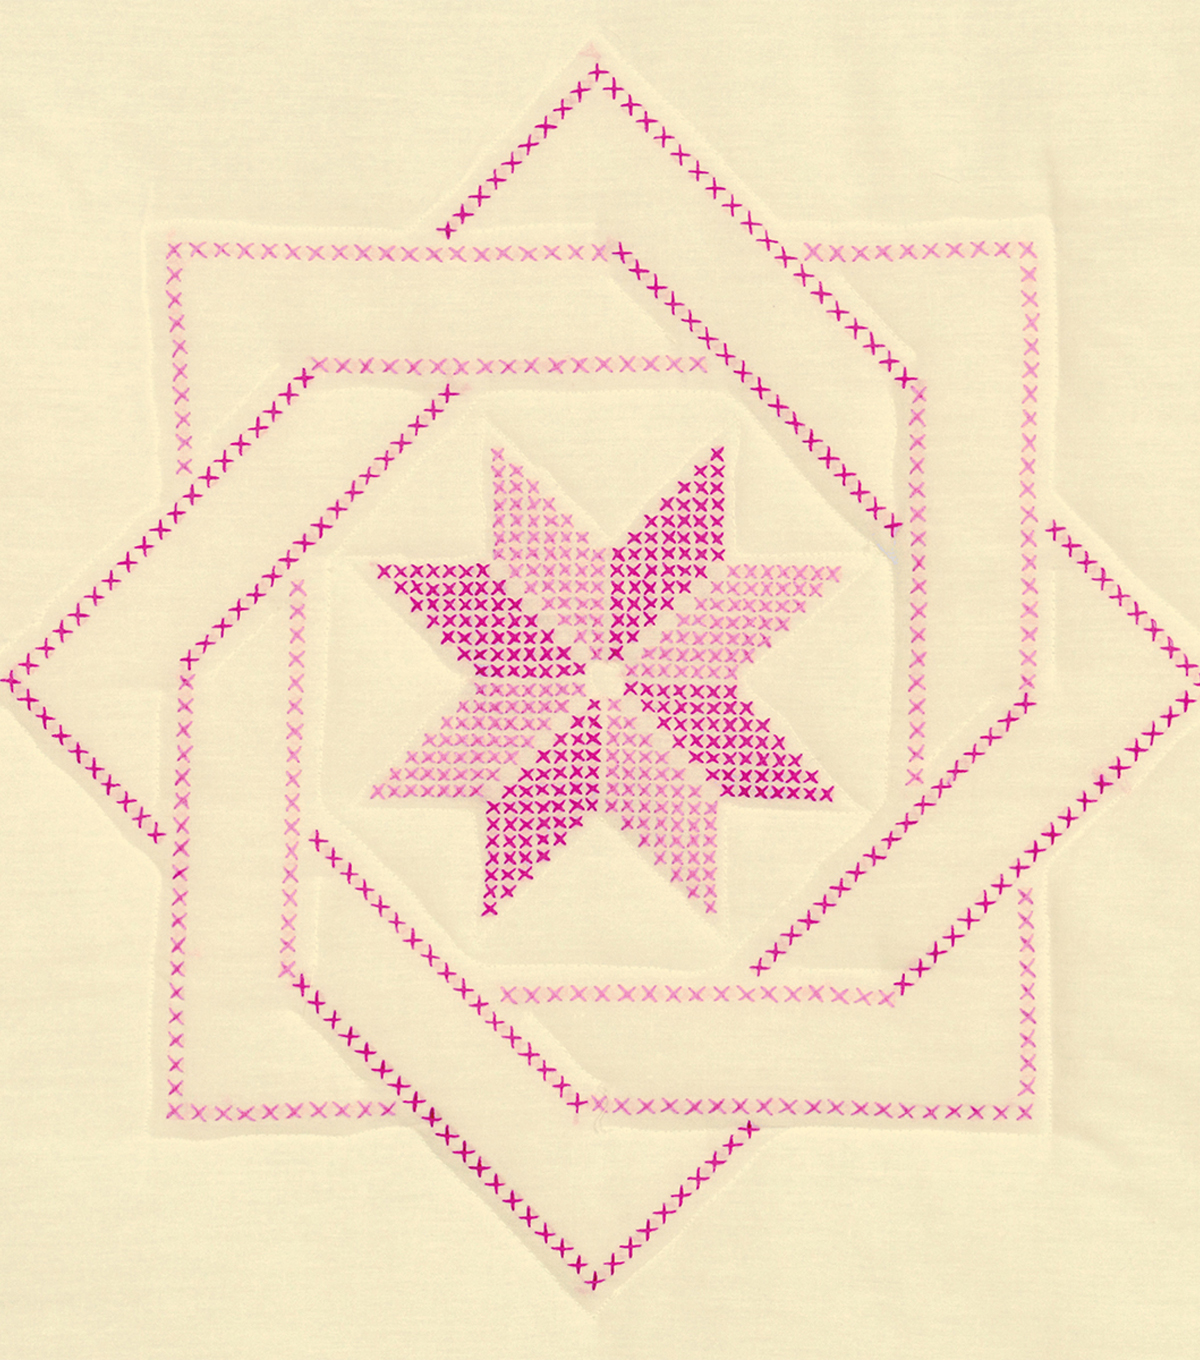 Jack Dempsey Needle Art 6 pk 18\u0027\u0027x18\u0027\u0027 Antique Quilt Block-XX Woven Star